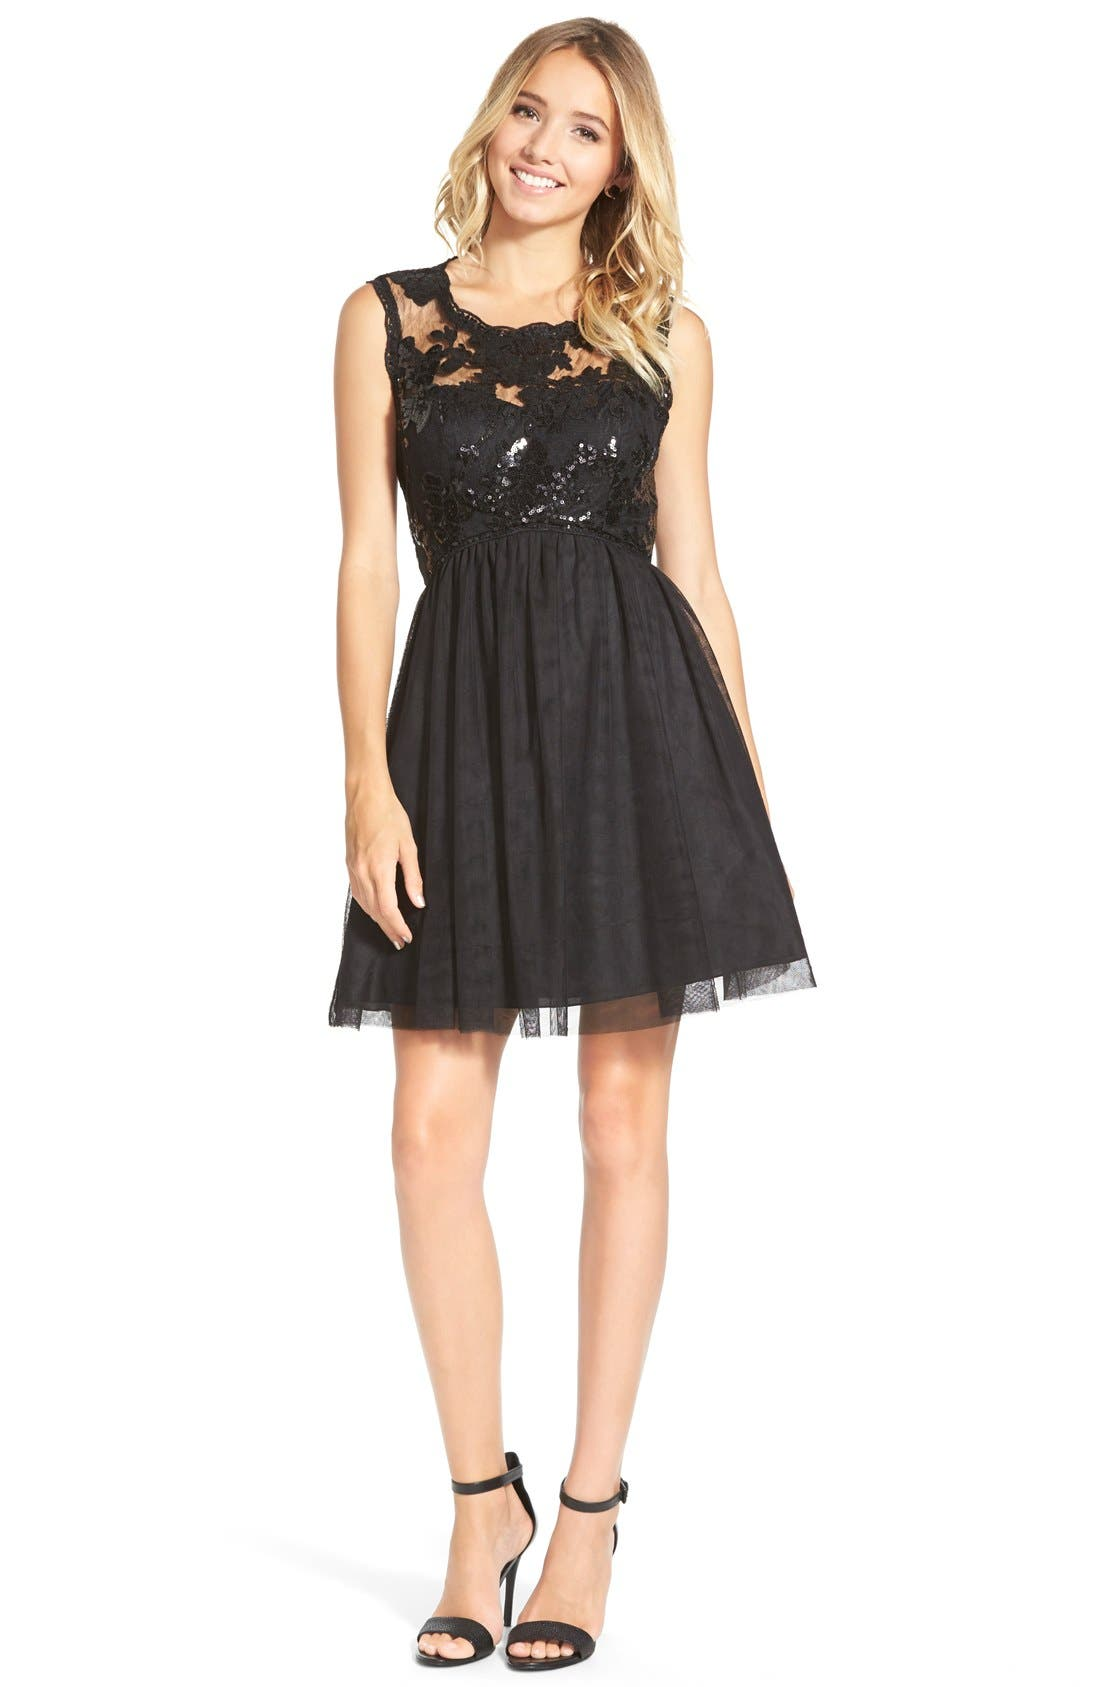 Alternate Image 1 Selected - Sequin Hearts Sequin Lace Skater Dress